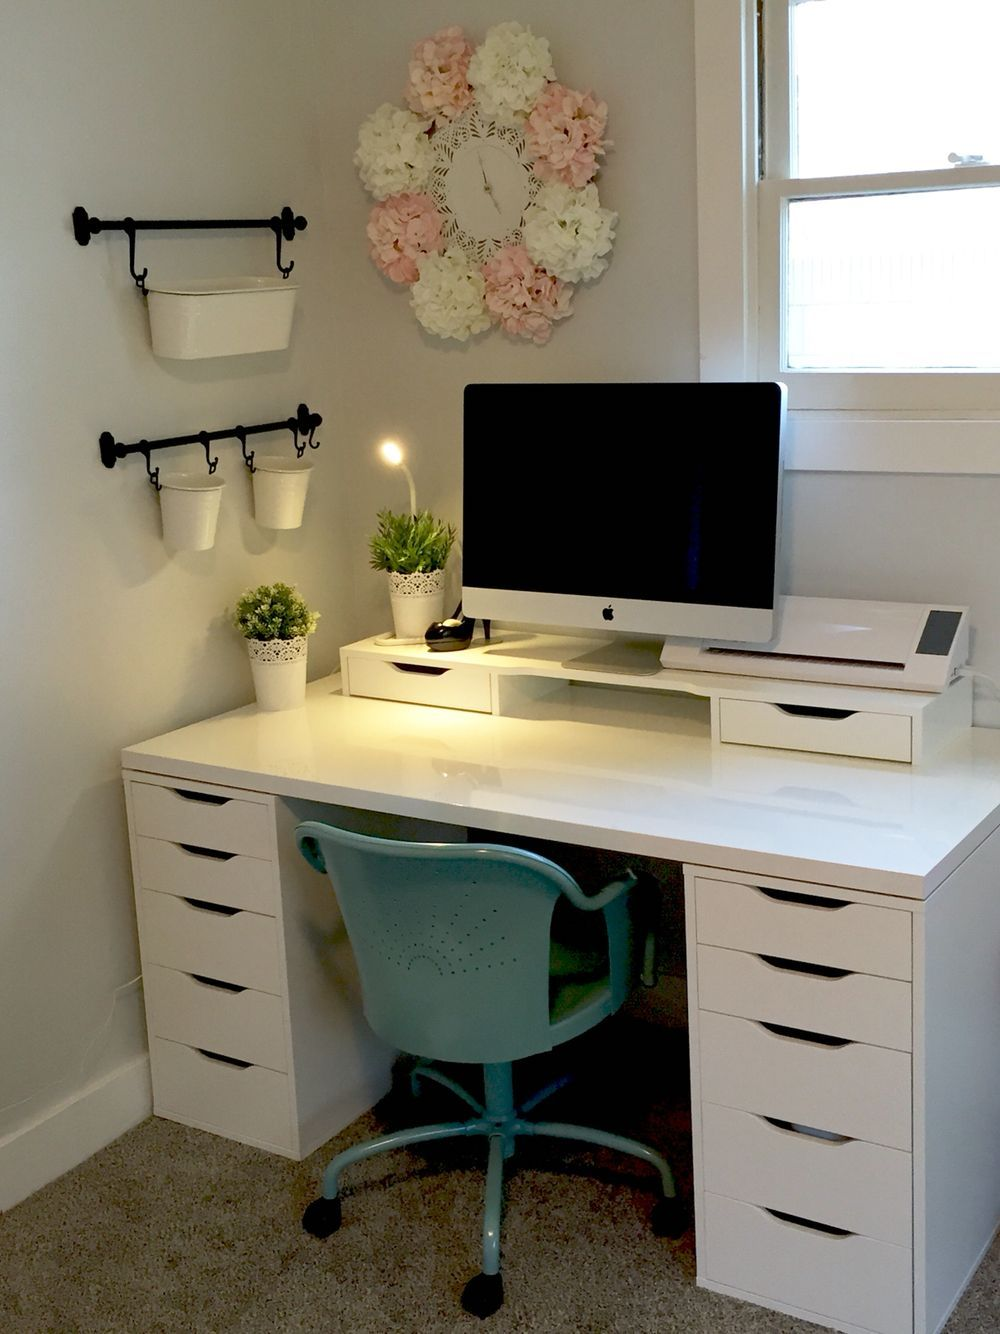 12 Home Office Desk Ideas That Are Functional And Beautiful